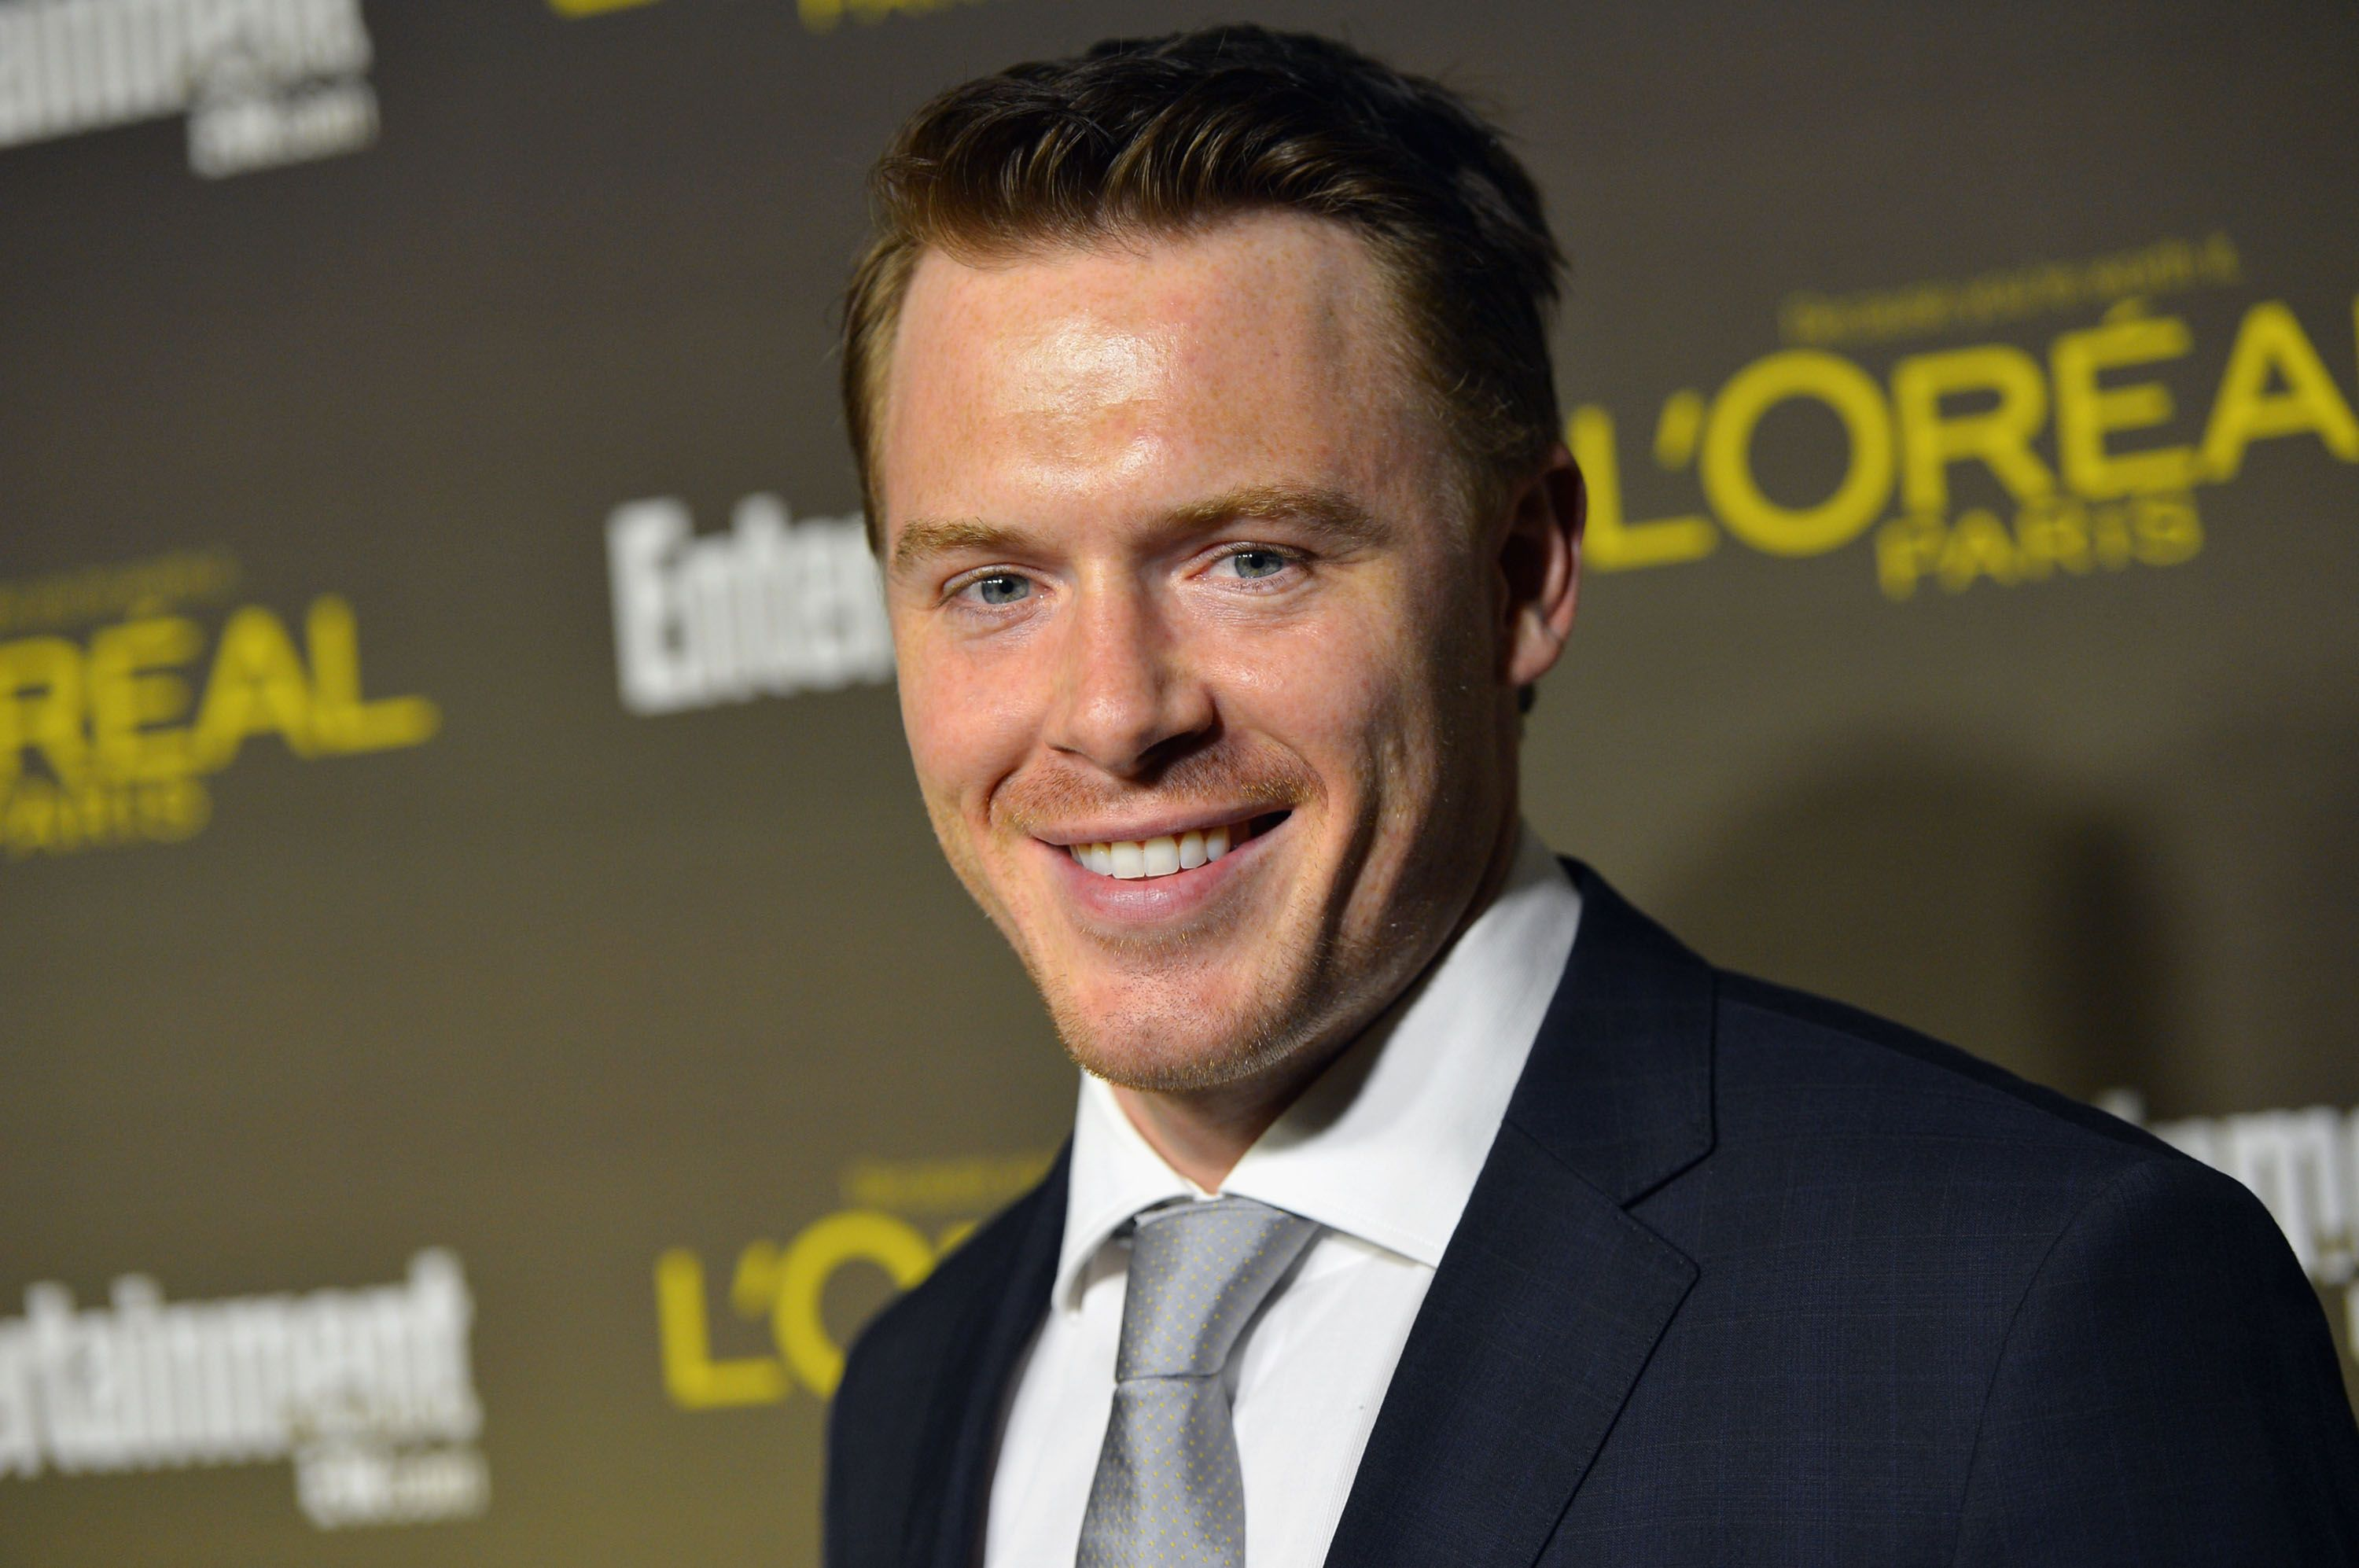 Diego Klattenhoff at the 2012 Entertainment Weekly Pre-Emmy Party in West Hollywood | Source: Getty Images